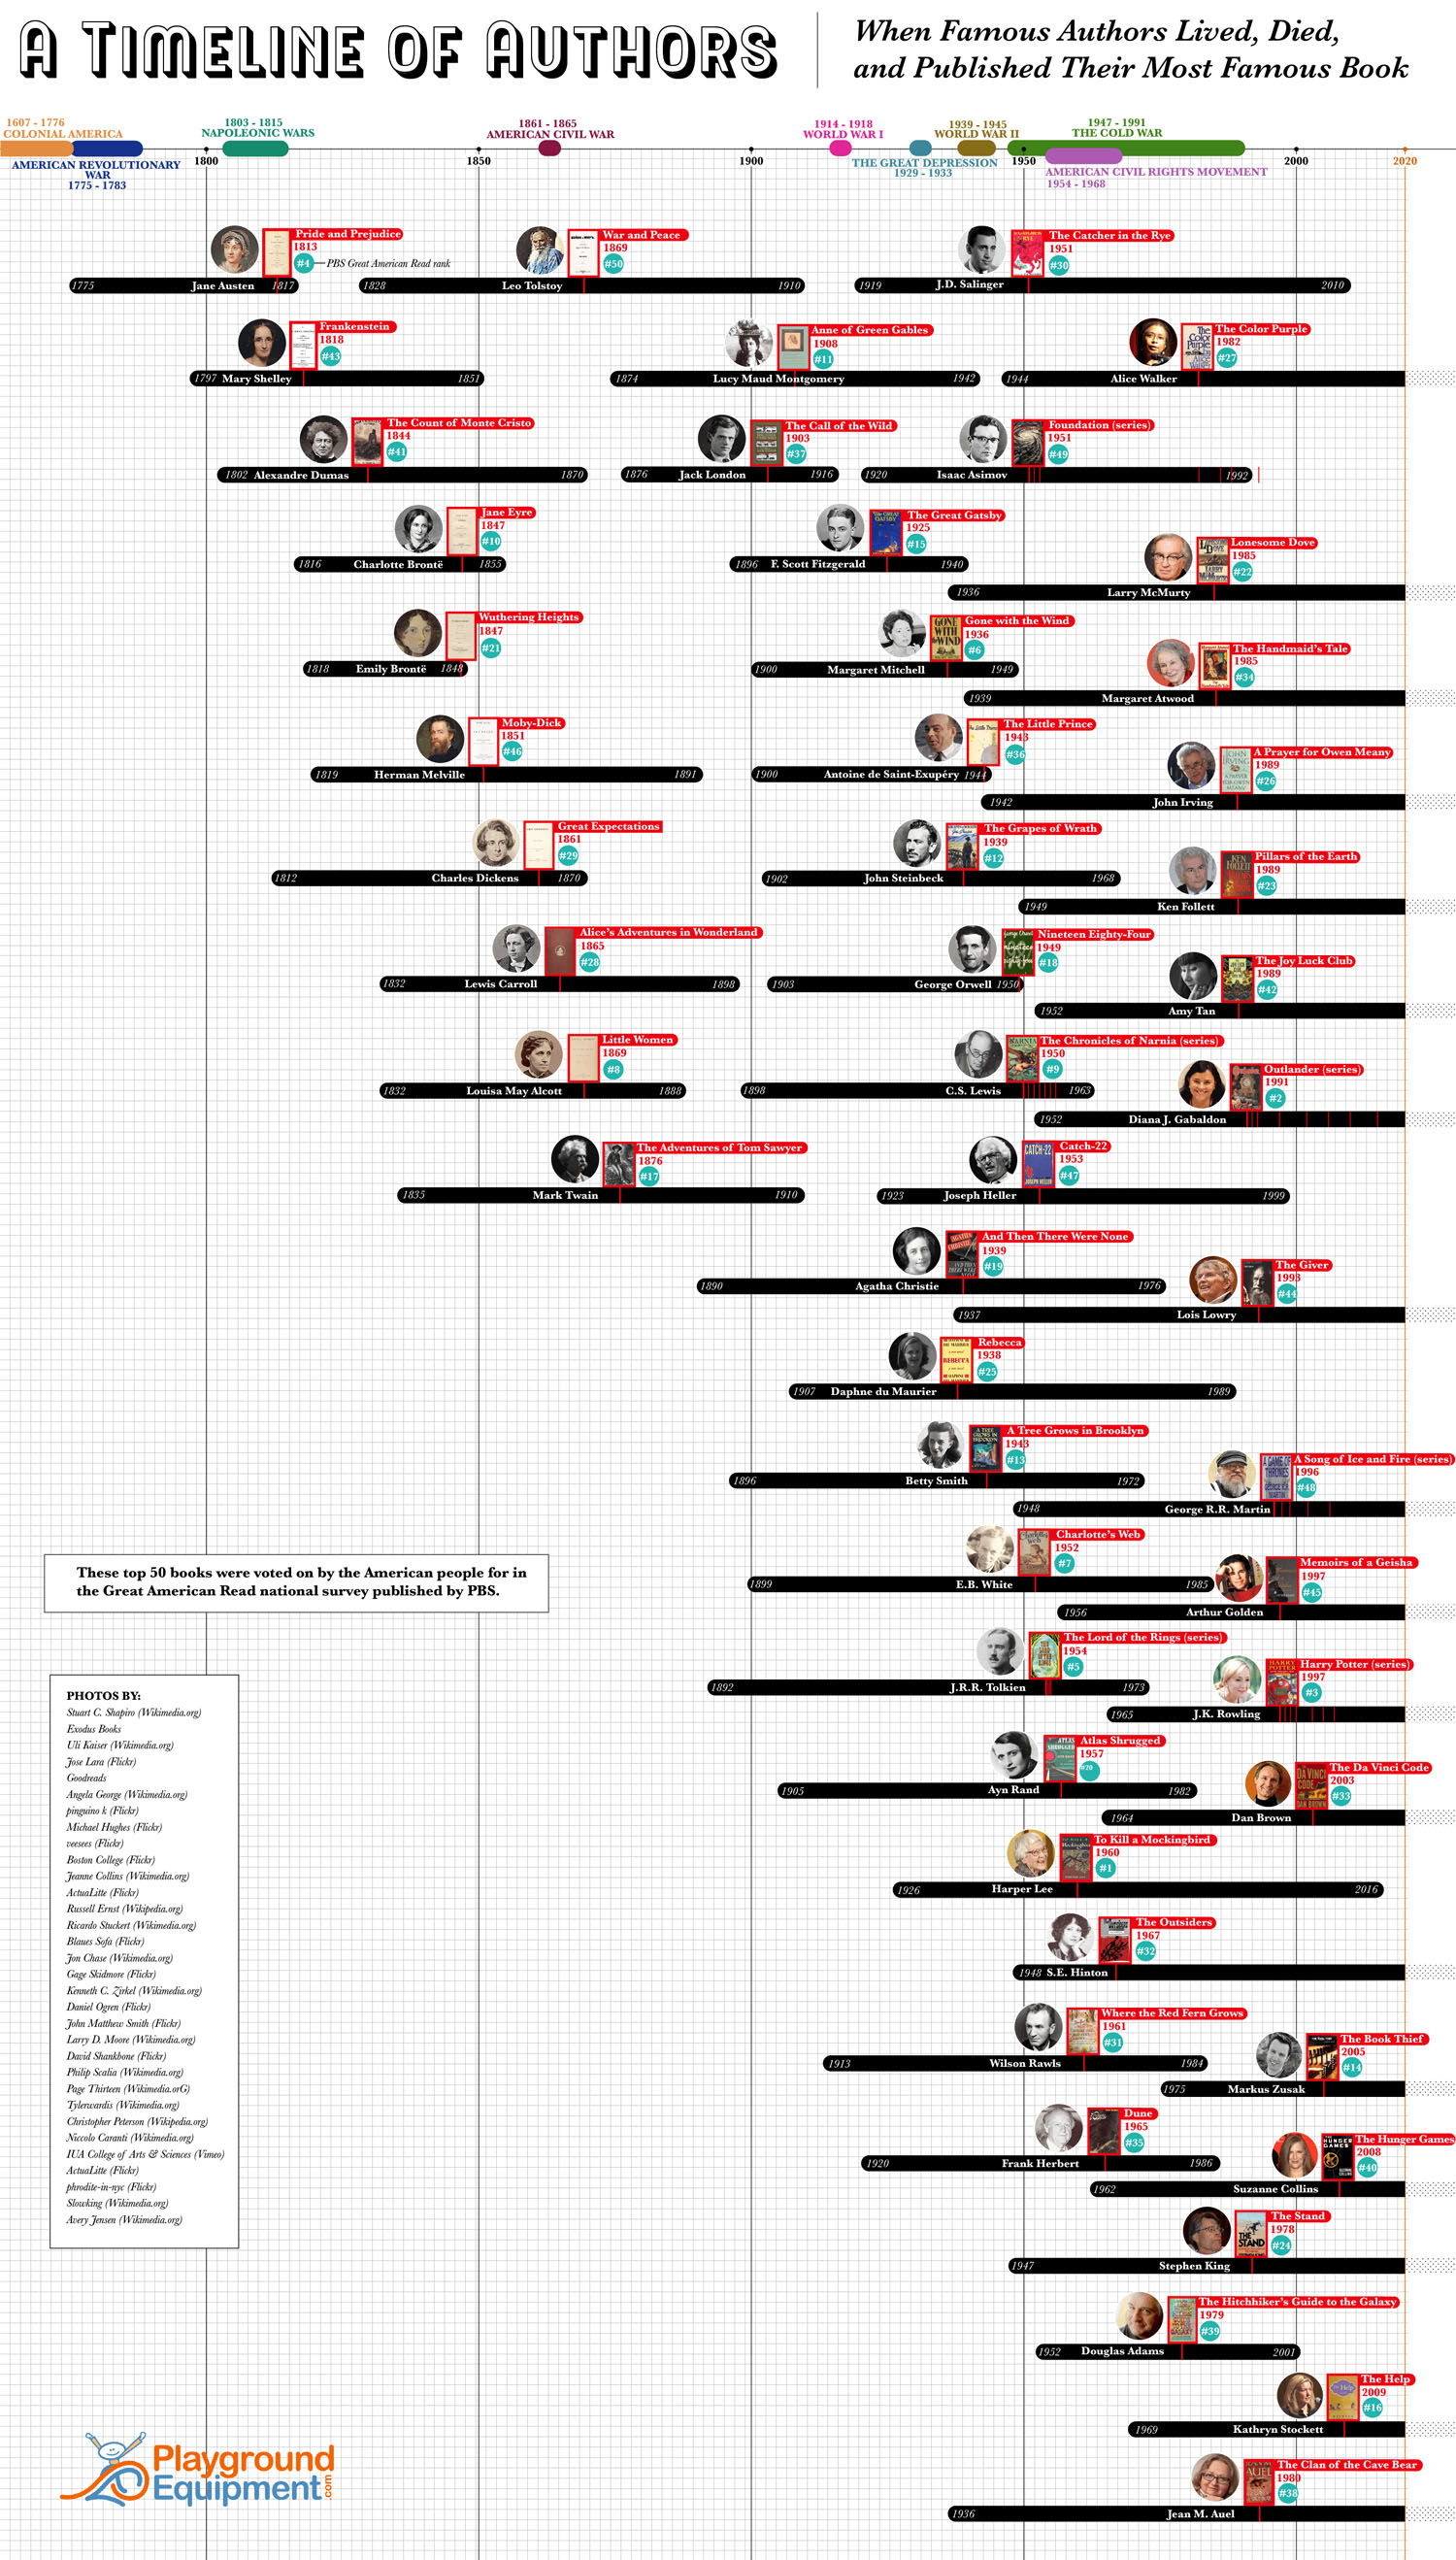 A Timeline of Famous Authors